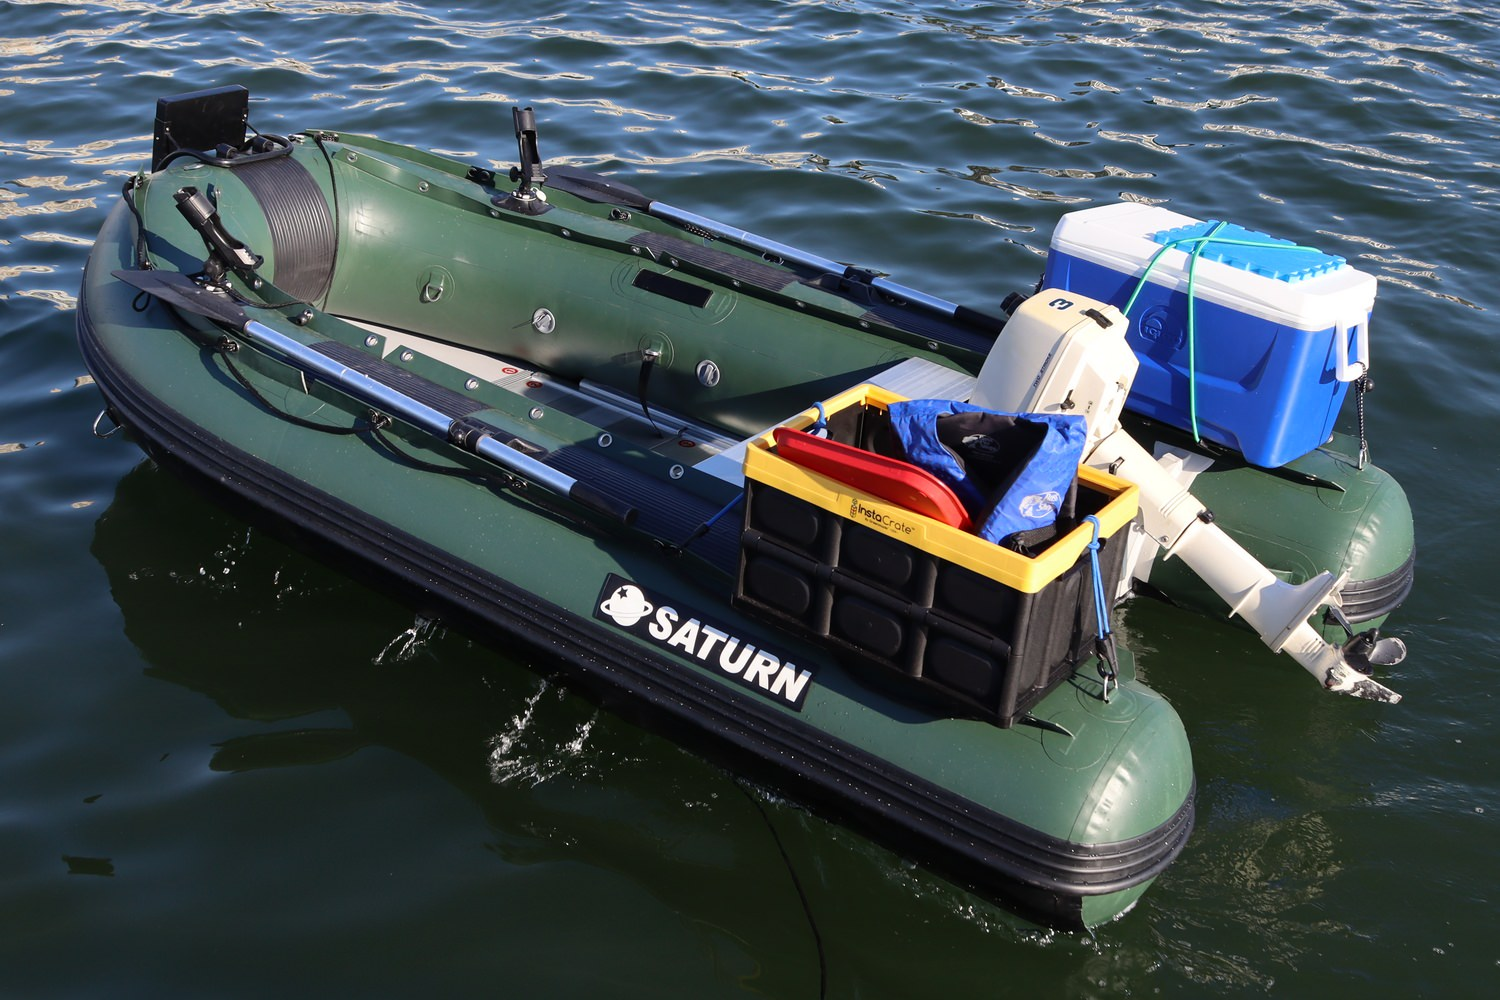 Saturn Fishing Inflatable Boat